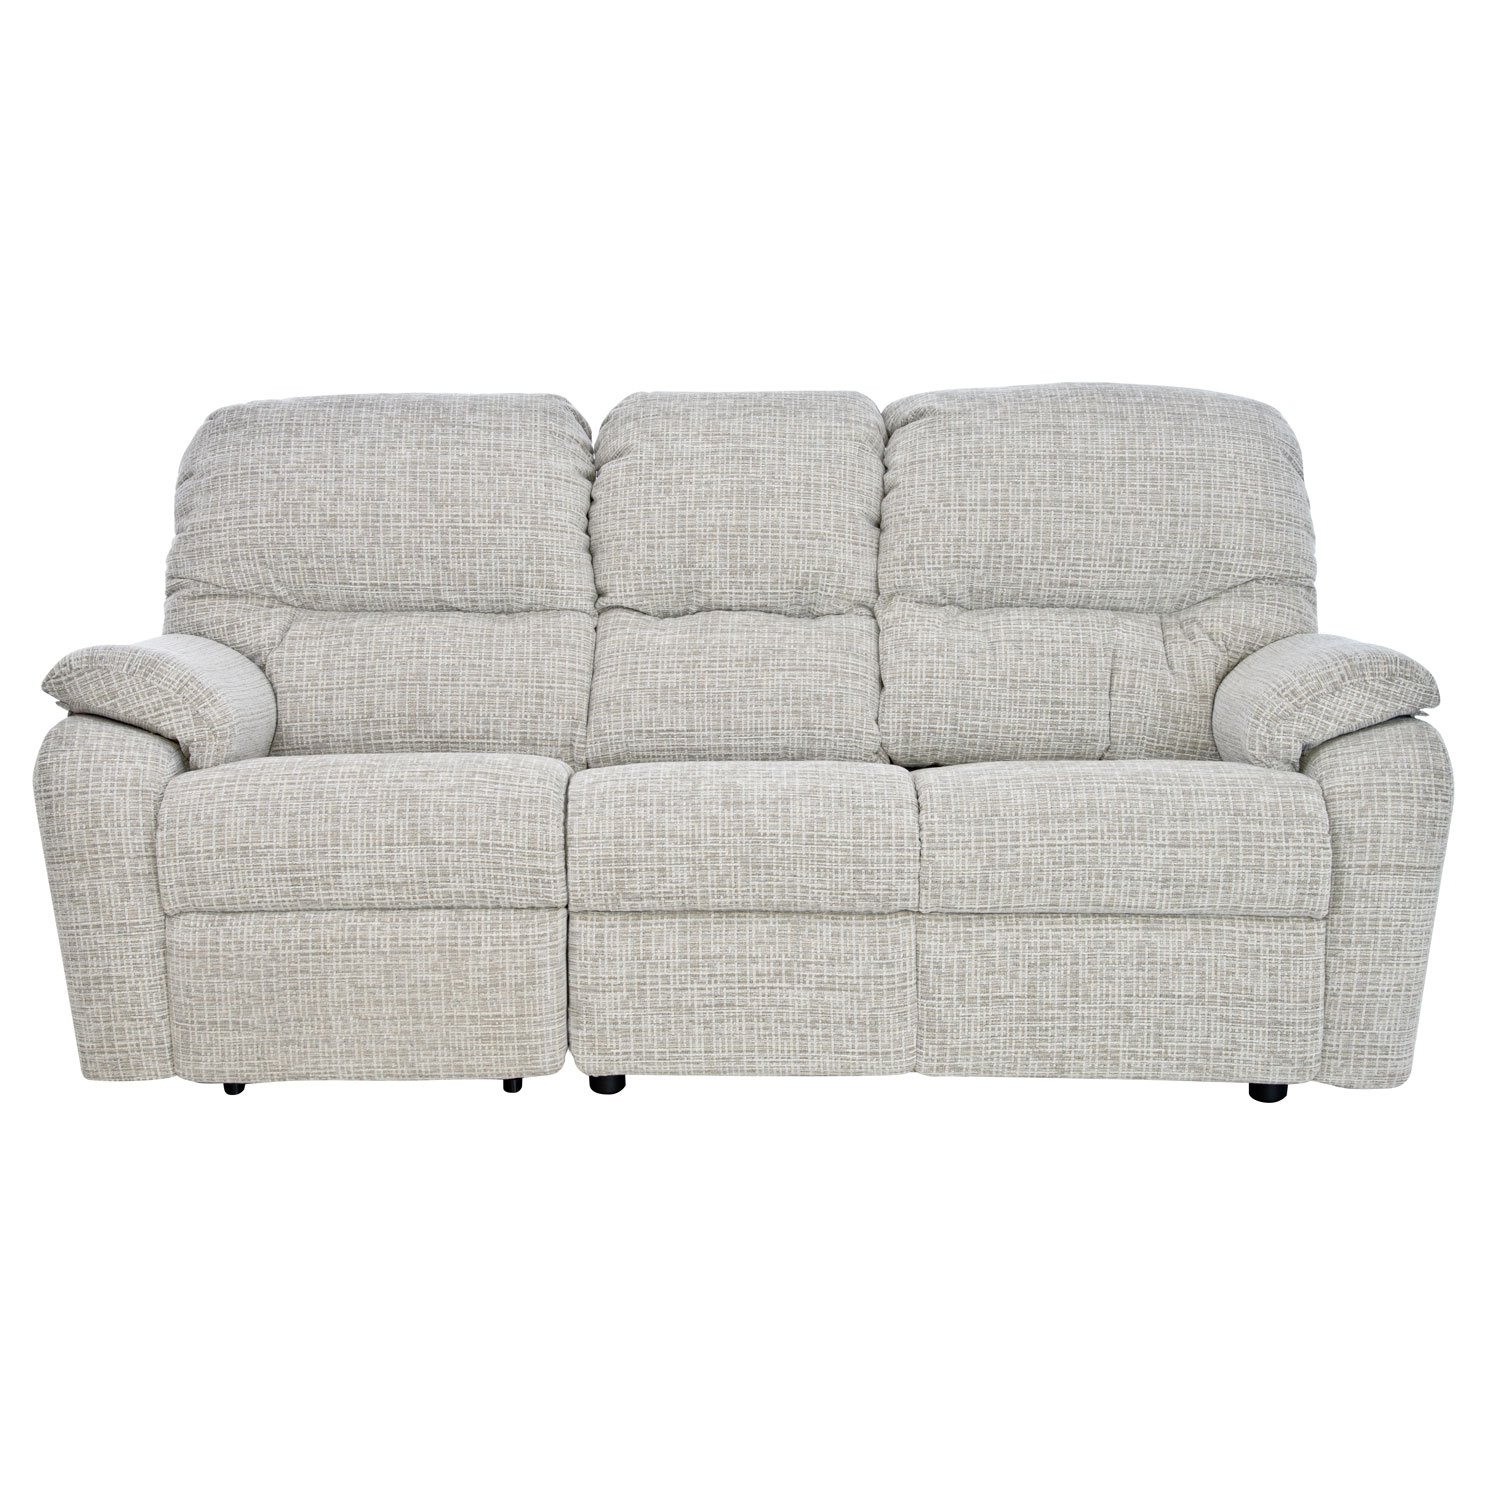 G Plan Mistral 3 Seater Left Manual Recliner Sofa